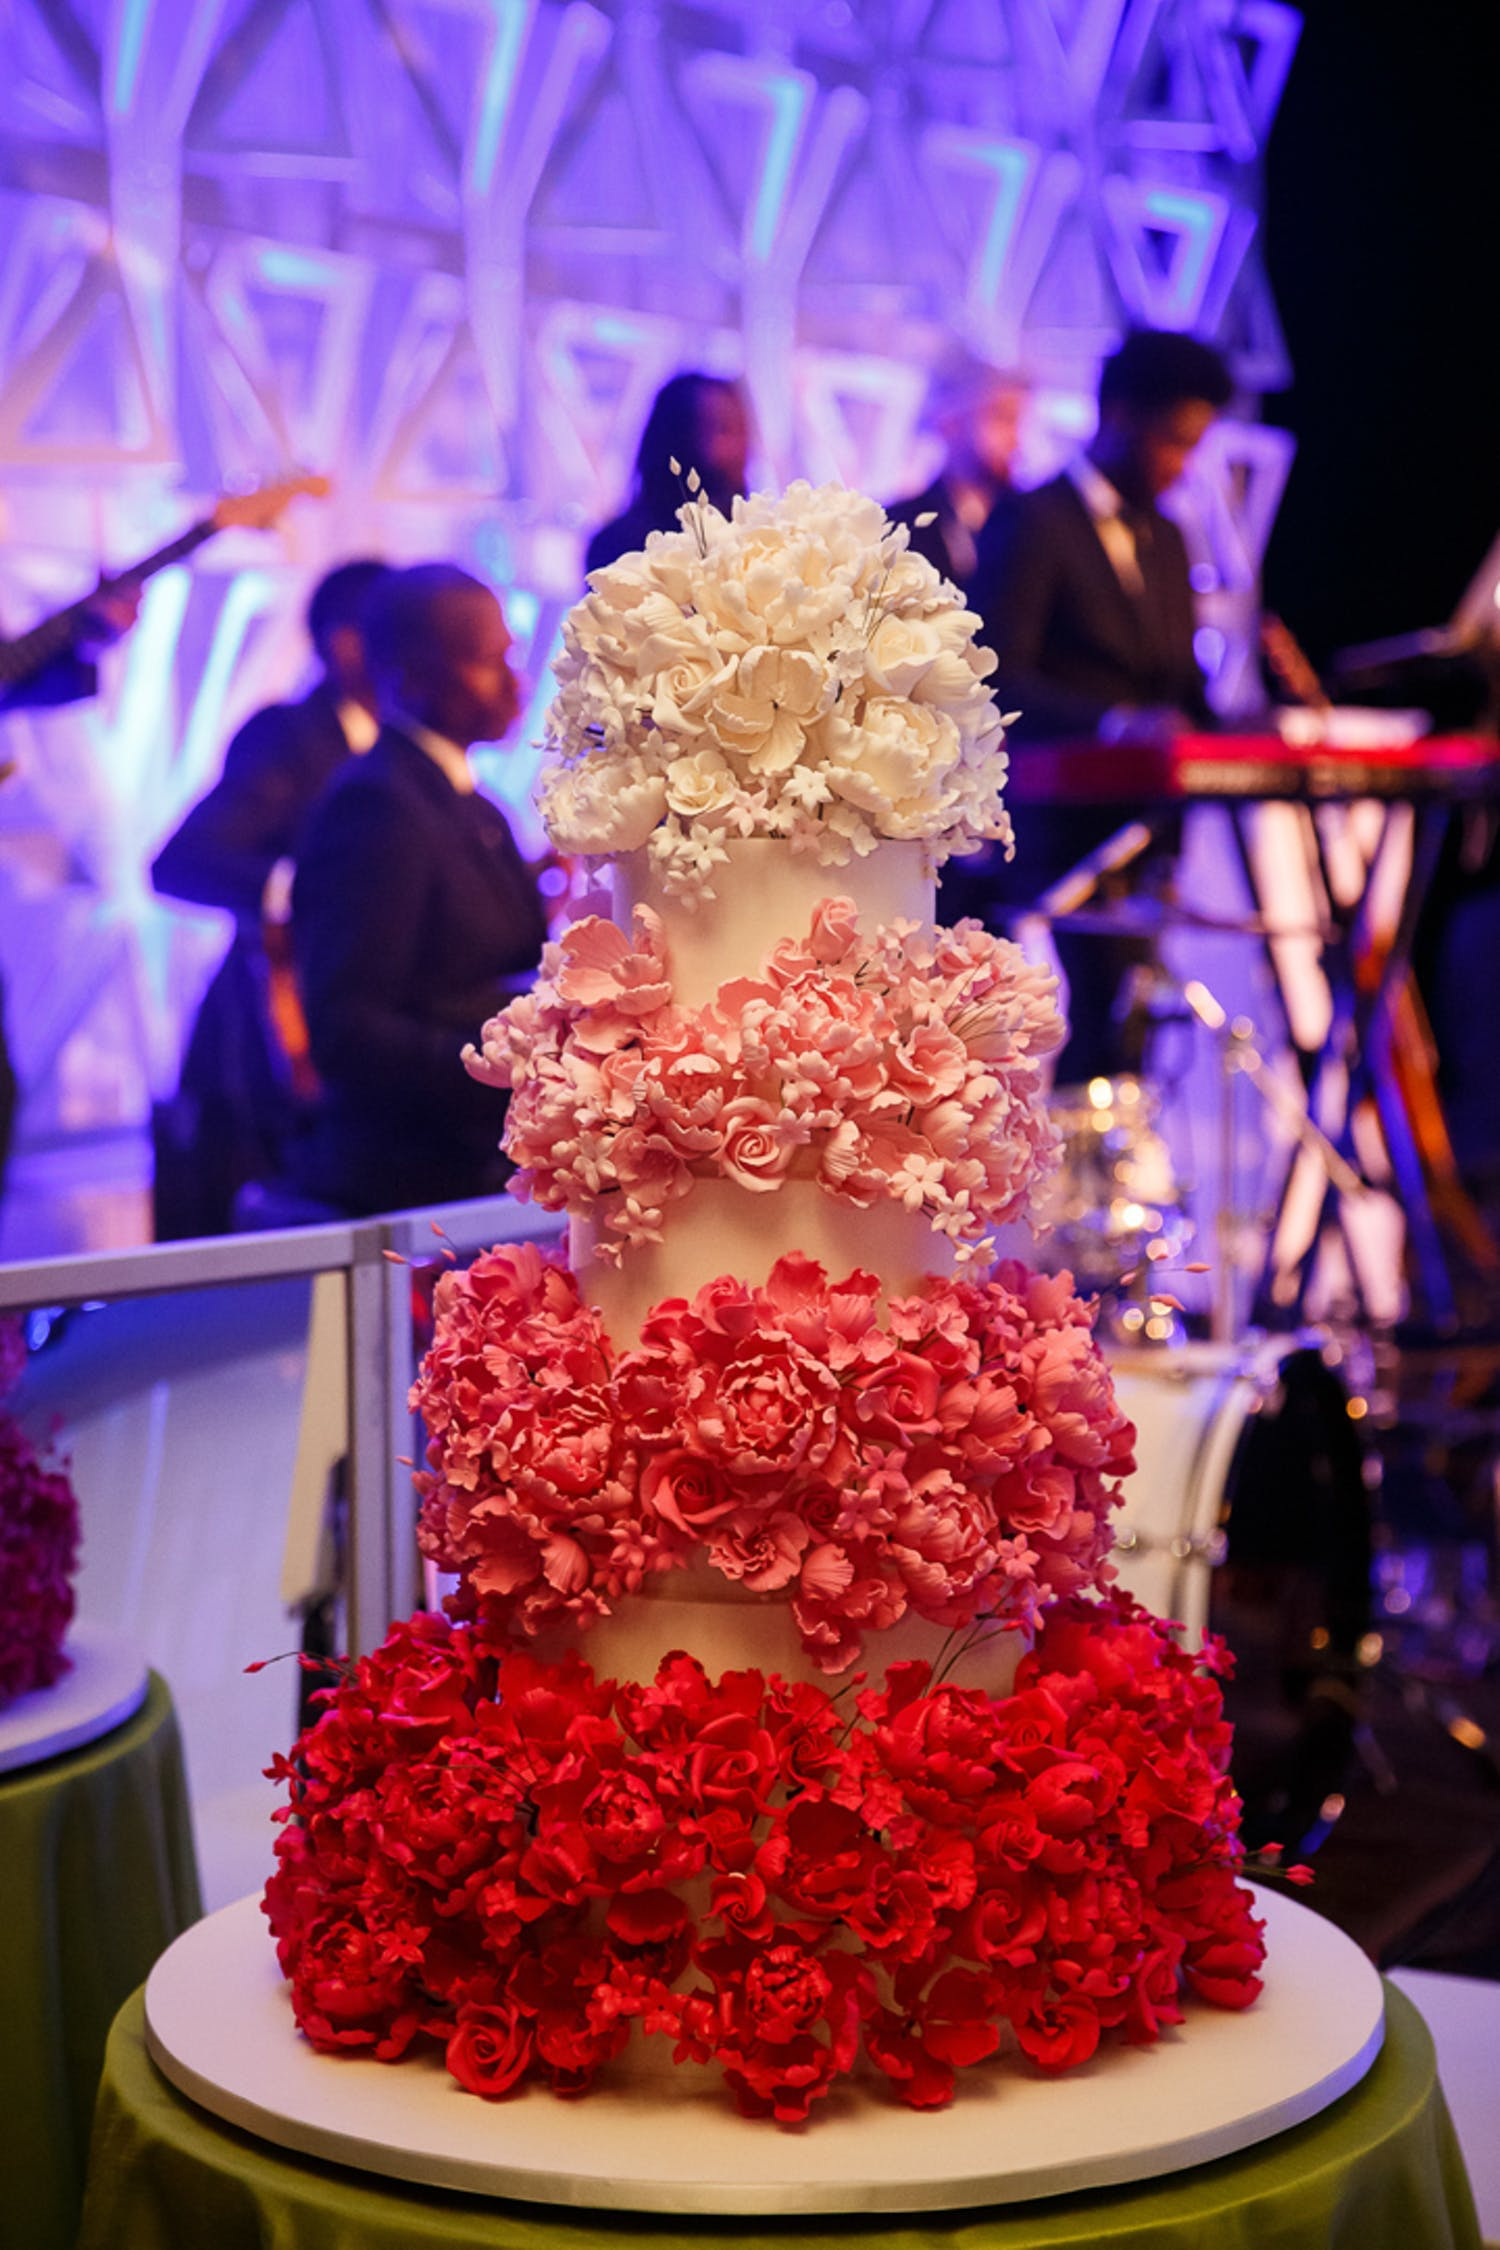 Four-tier cake covered with ombré tiers of flowers going from red to dark pink to pink to white | PartySlate